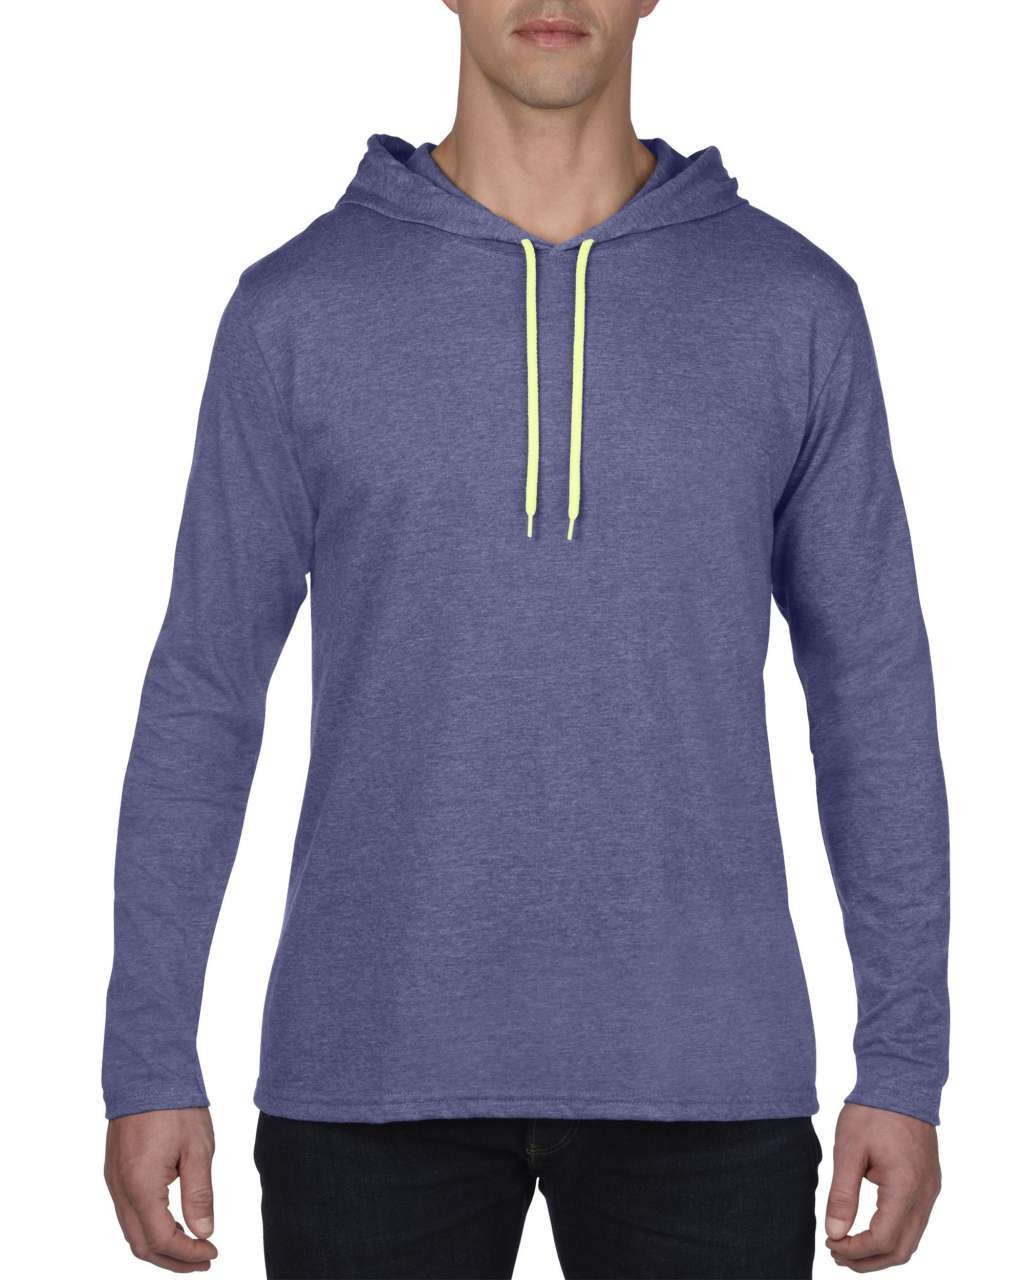 Anvil Adult Long Sleeve Hooded Tee, Heather Blue/Neon Yellow (T-shirt